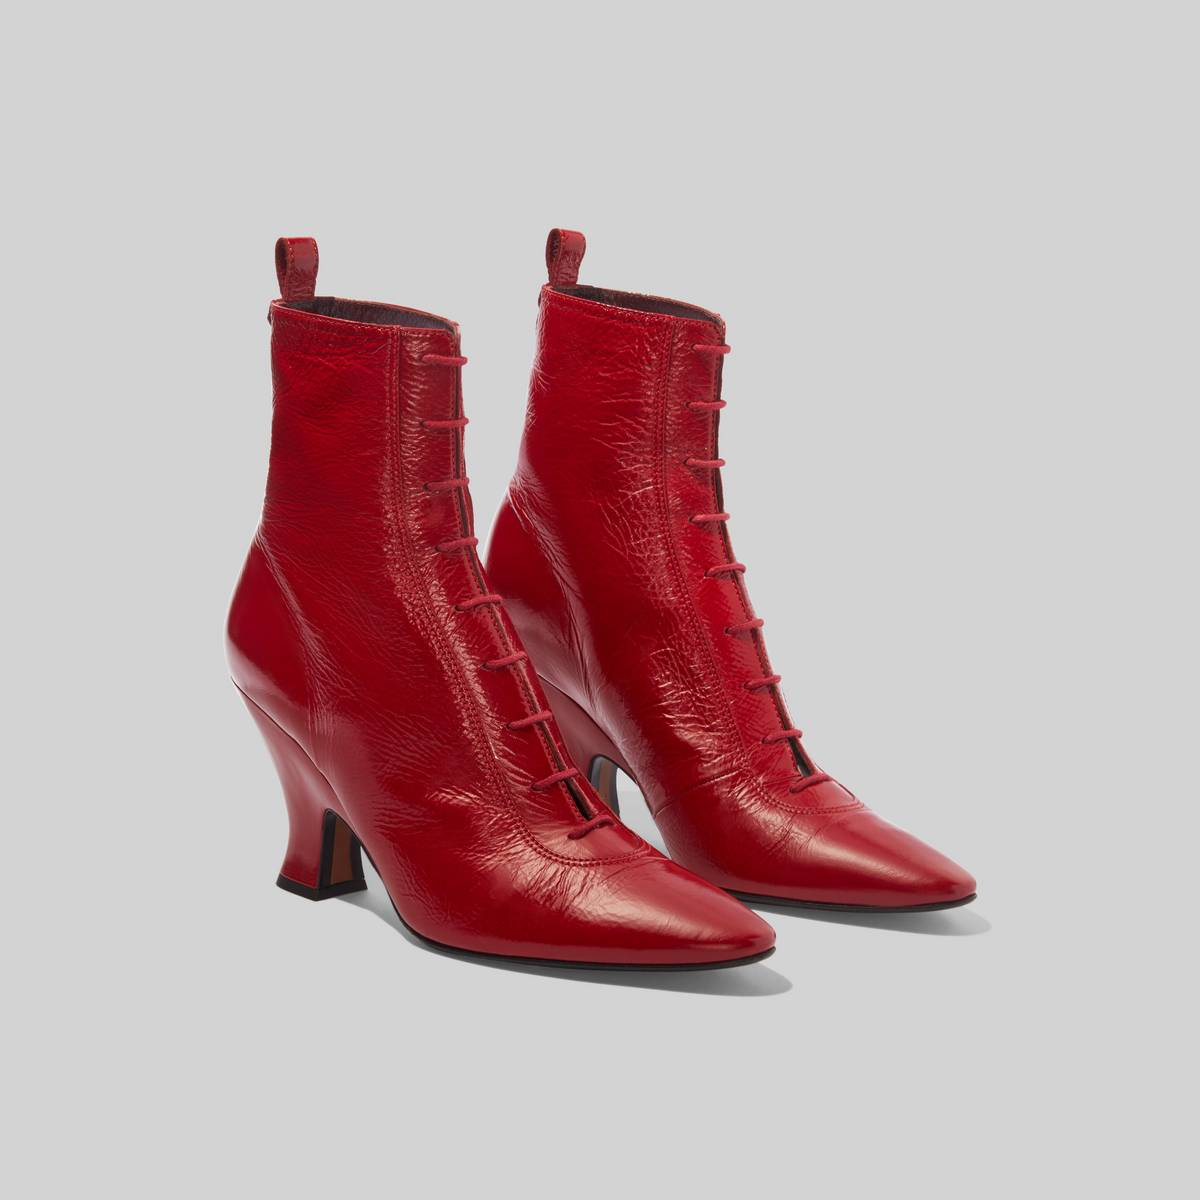 In shiny leather with prim corset lacing and an authentic sculpted vintage silhouette, our reinterpretation of The Victorian Boot walks the line between prim and punk. | MARC JACOBS Women\\'s The Victorian Boots in Red, Size 36